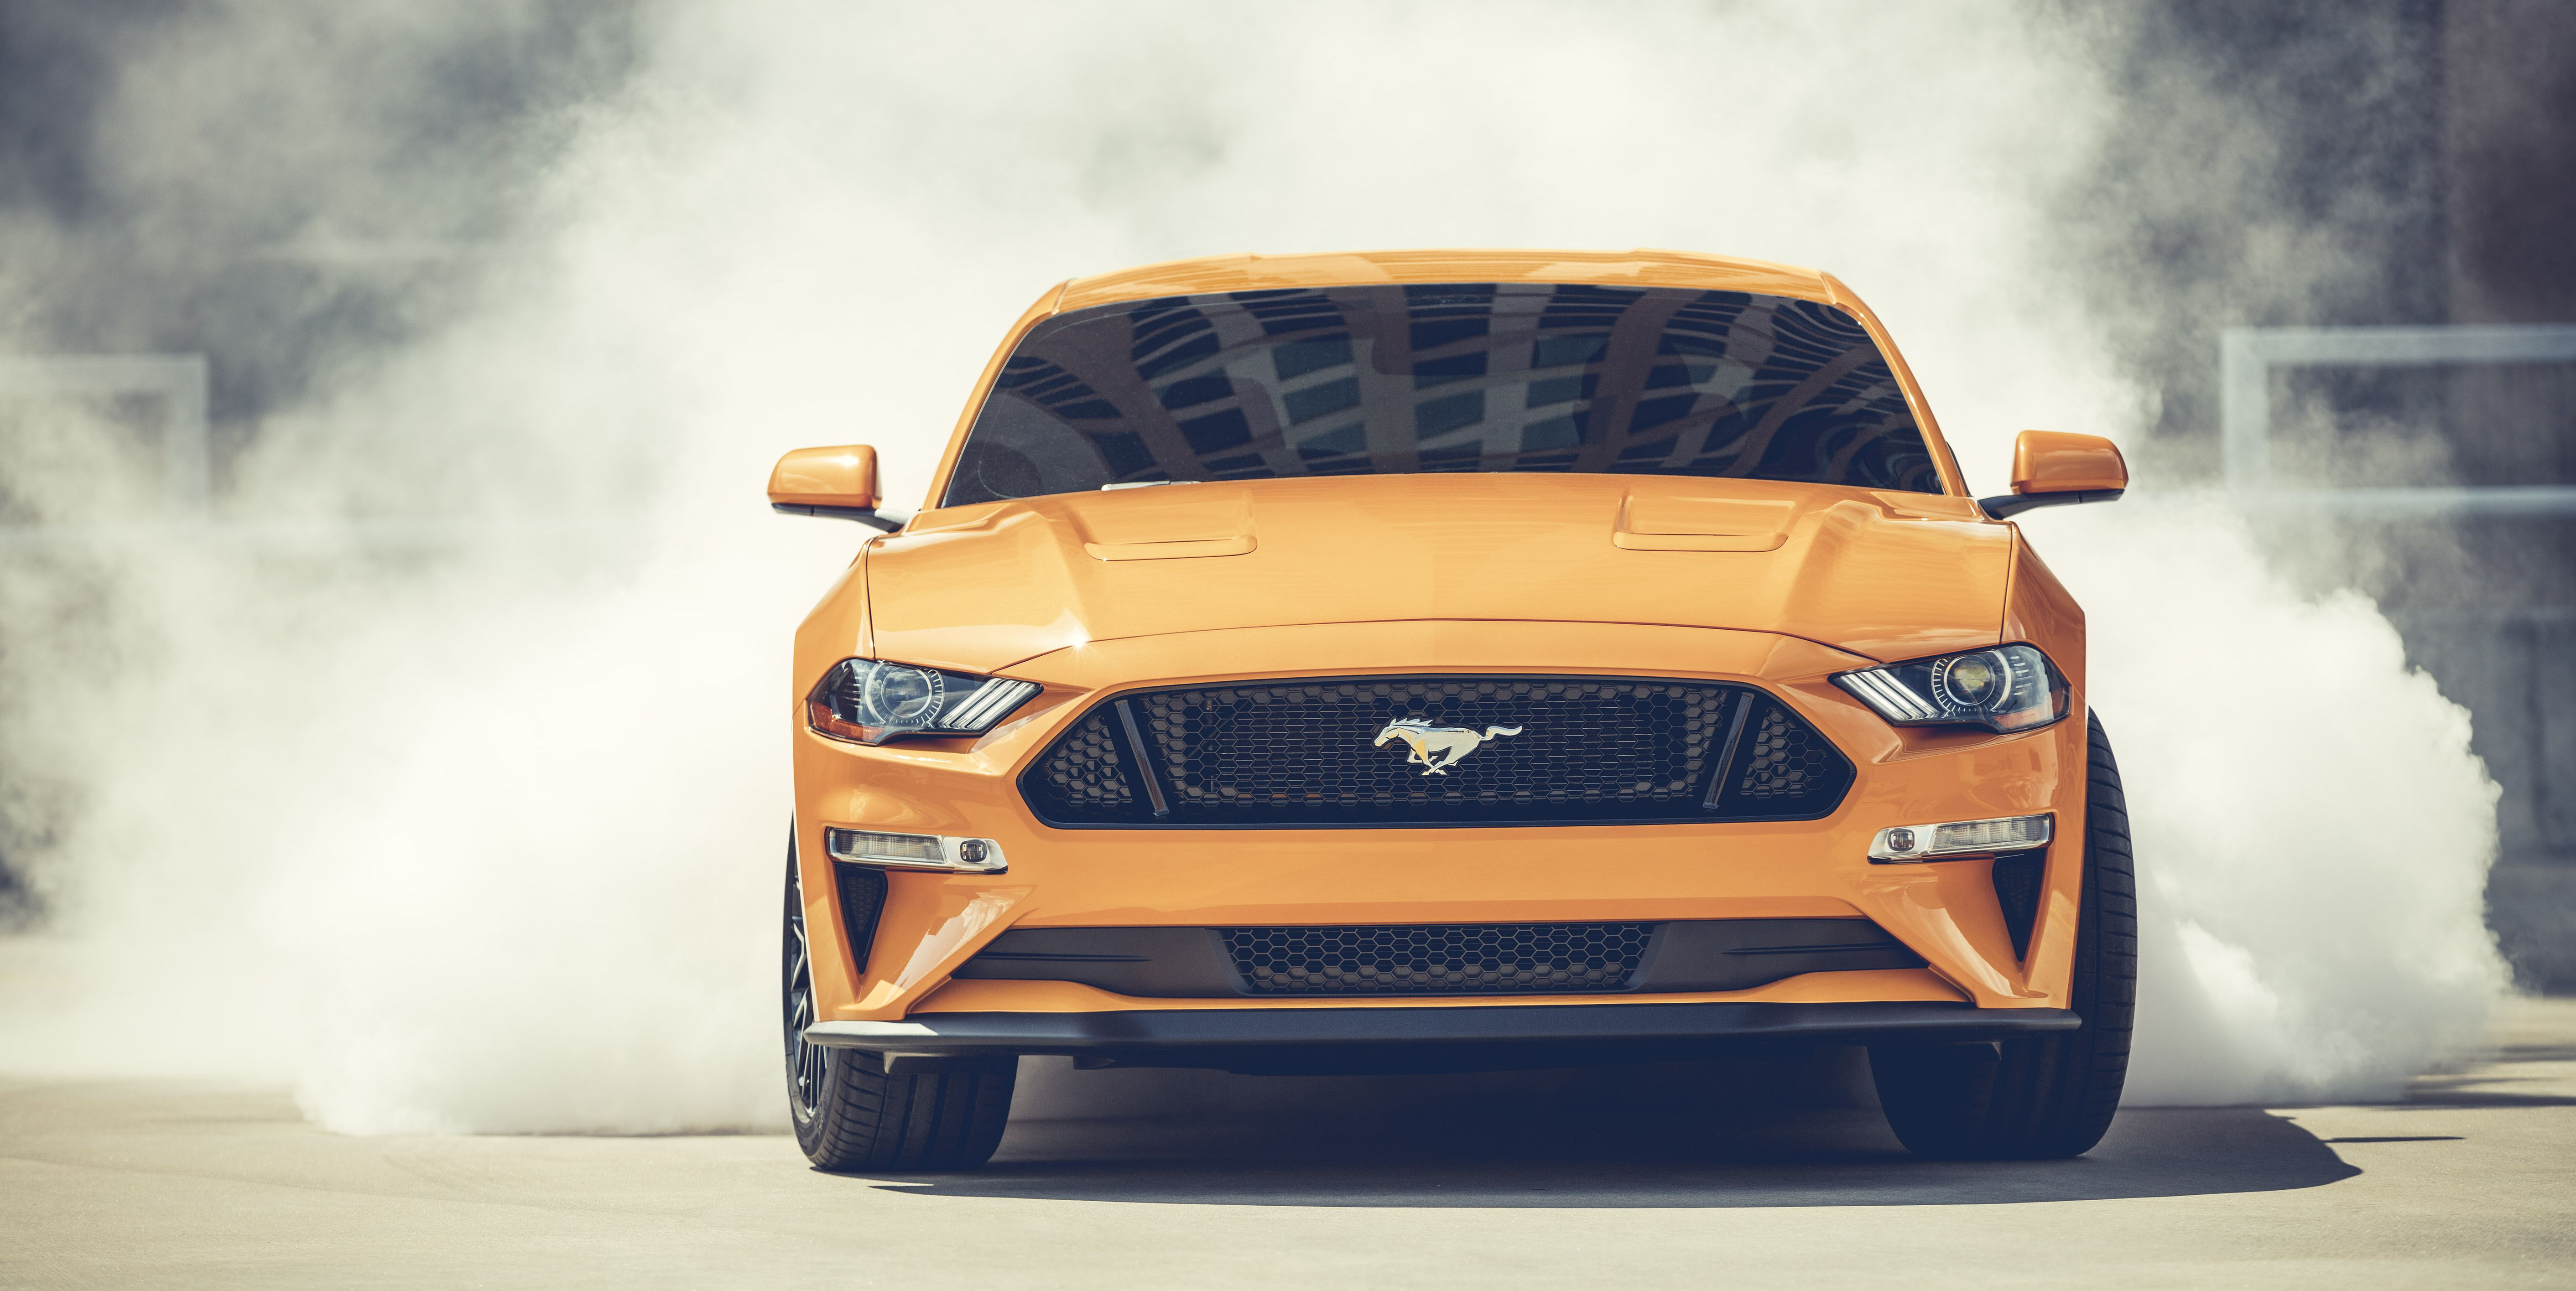 2018 Ford Mustang Gt Acceleration New Mustang Quarter Mile Time